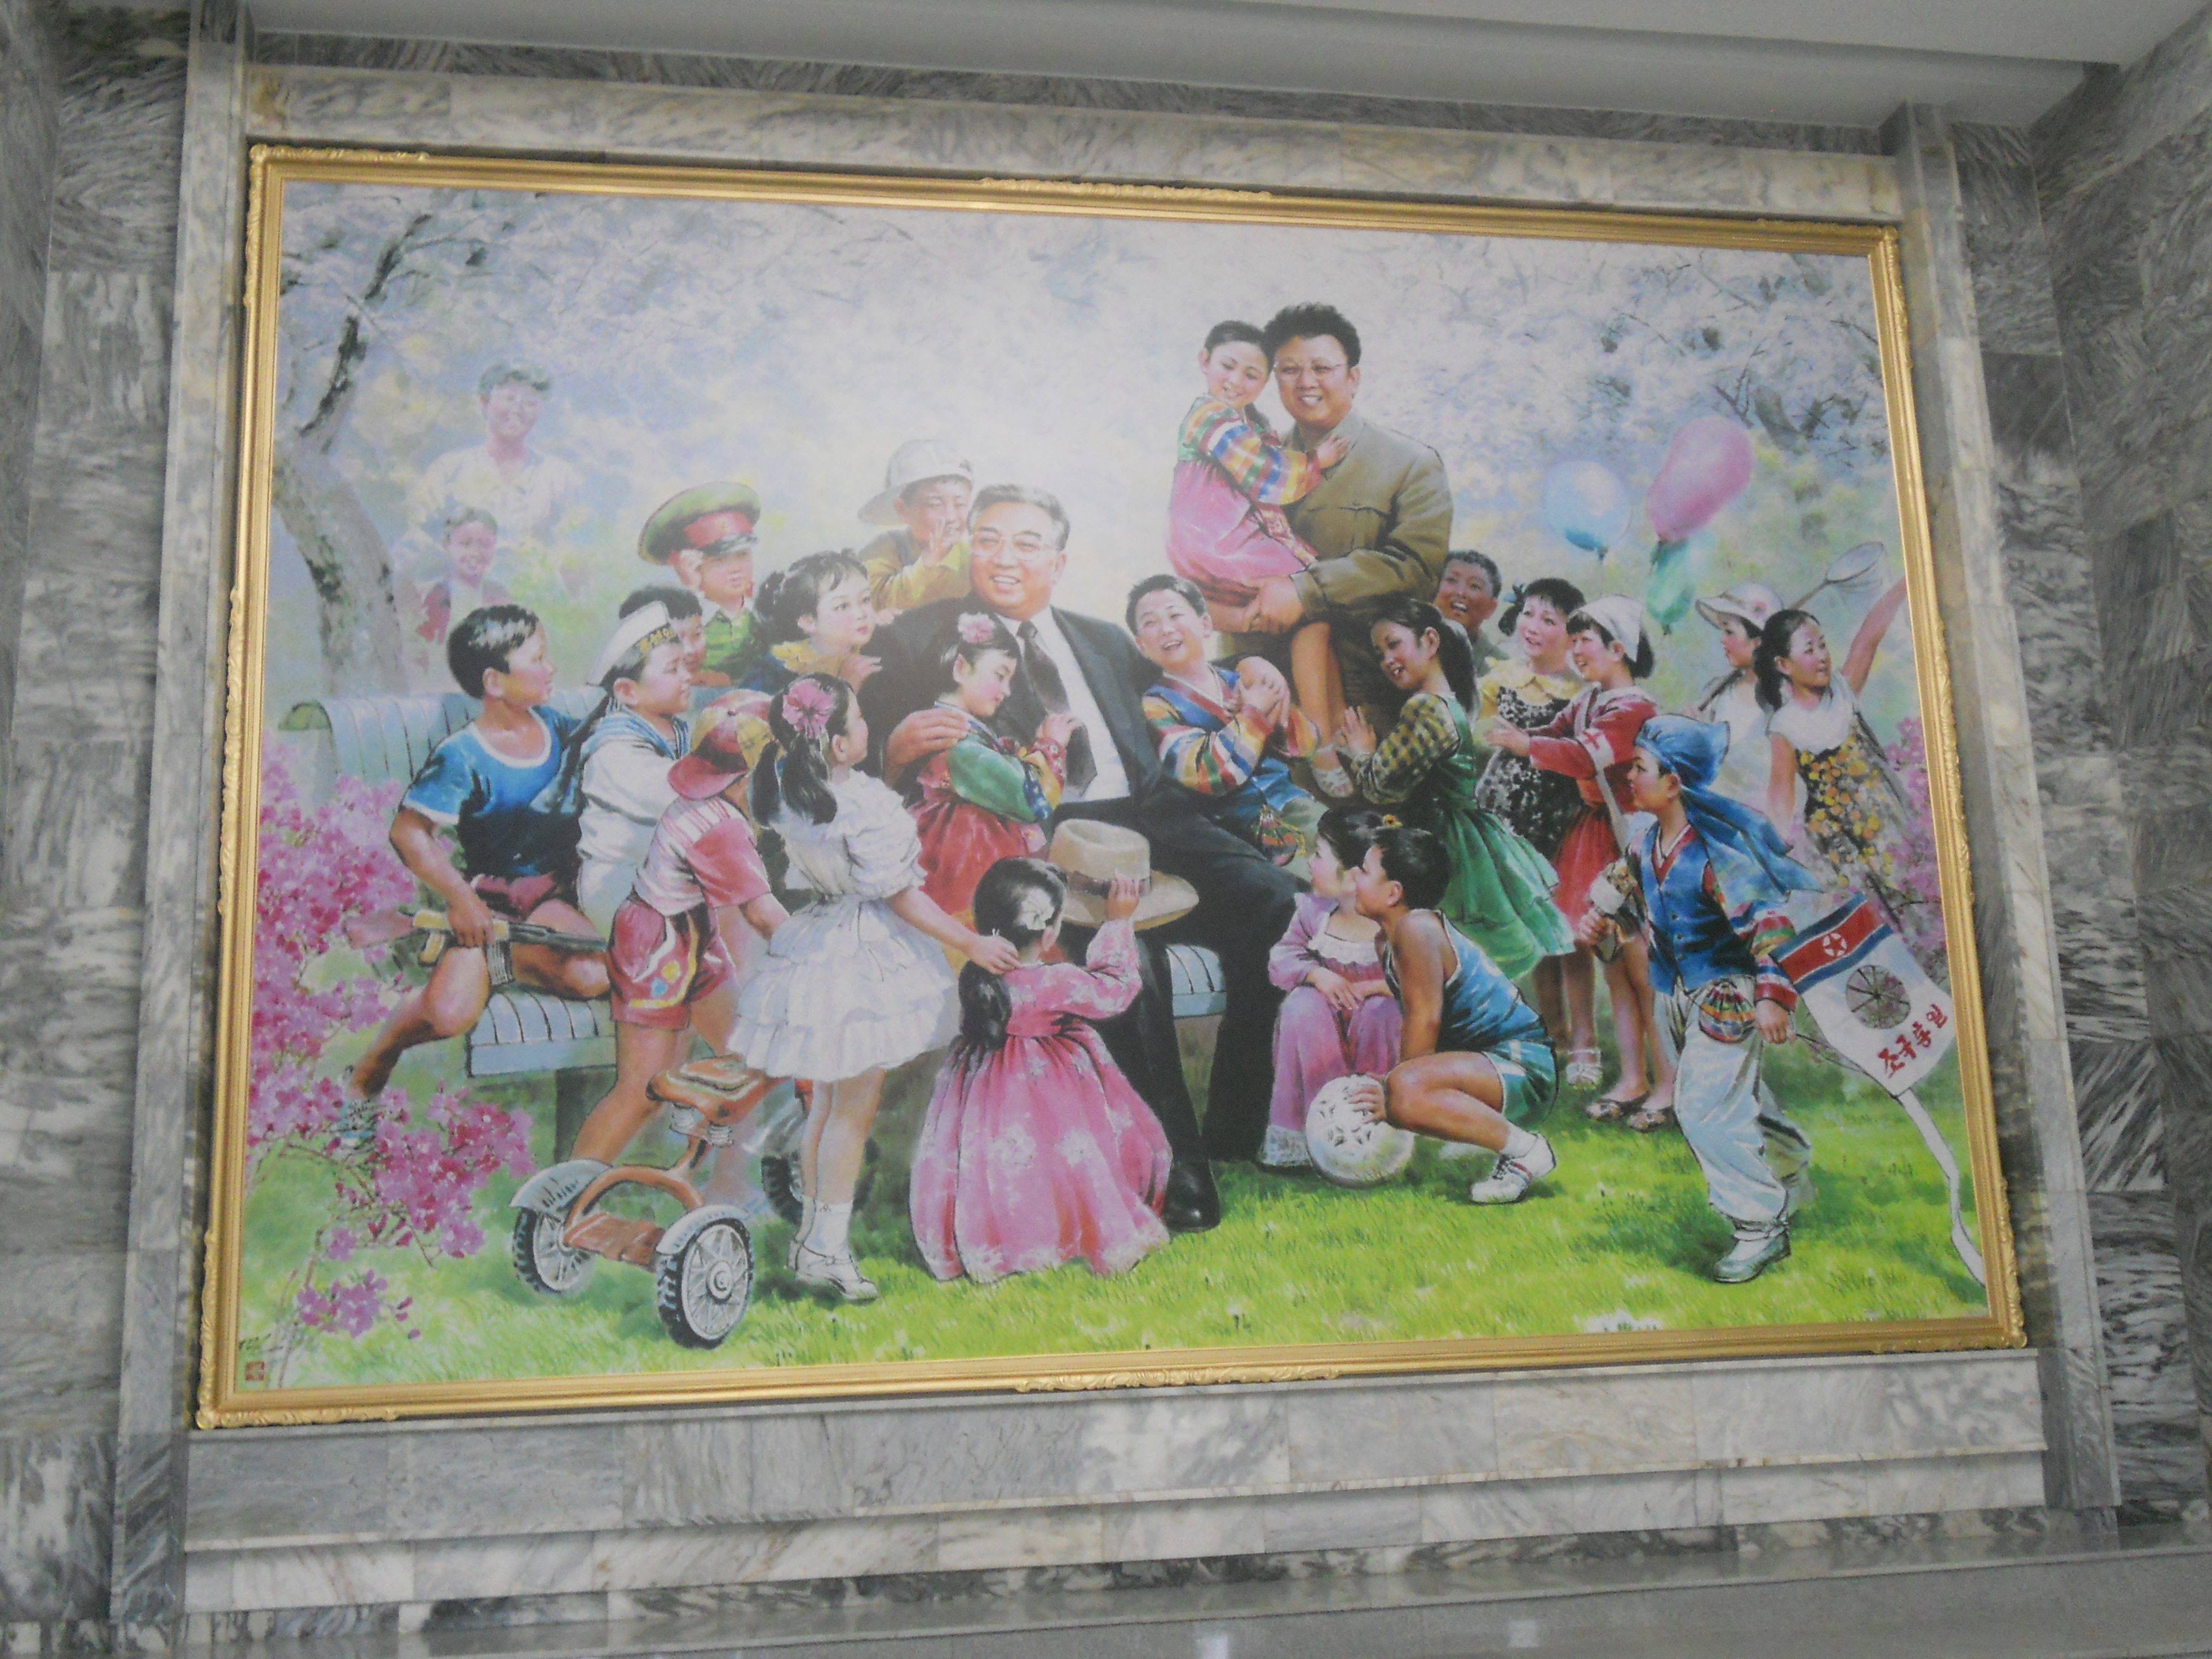 A painting of Kim Jong-il and his father Kim Il-sung, photographed in Pyongyang, North Korea, on August 13, 2010.